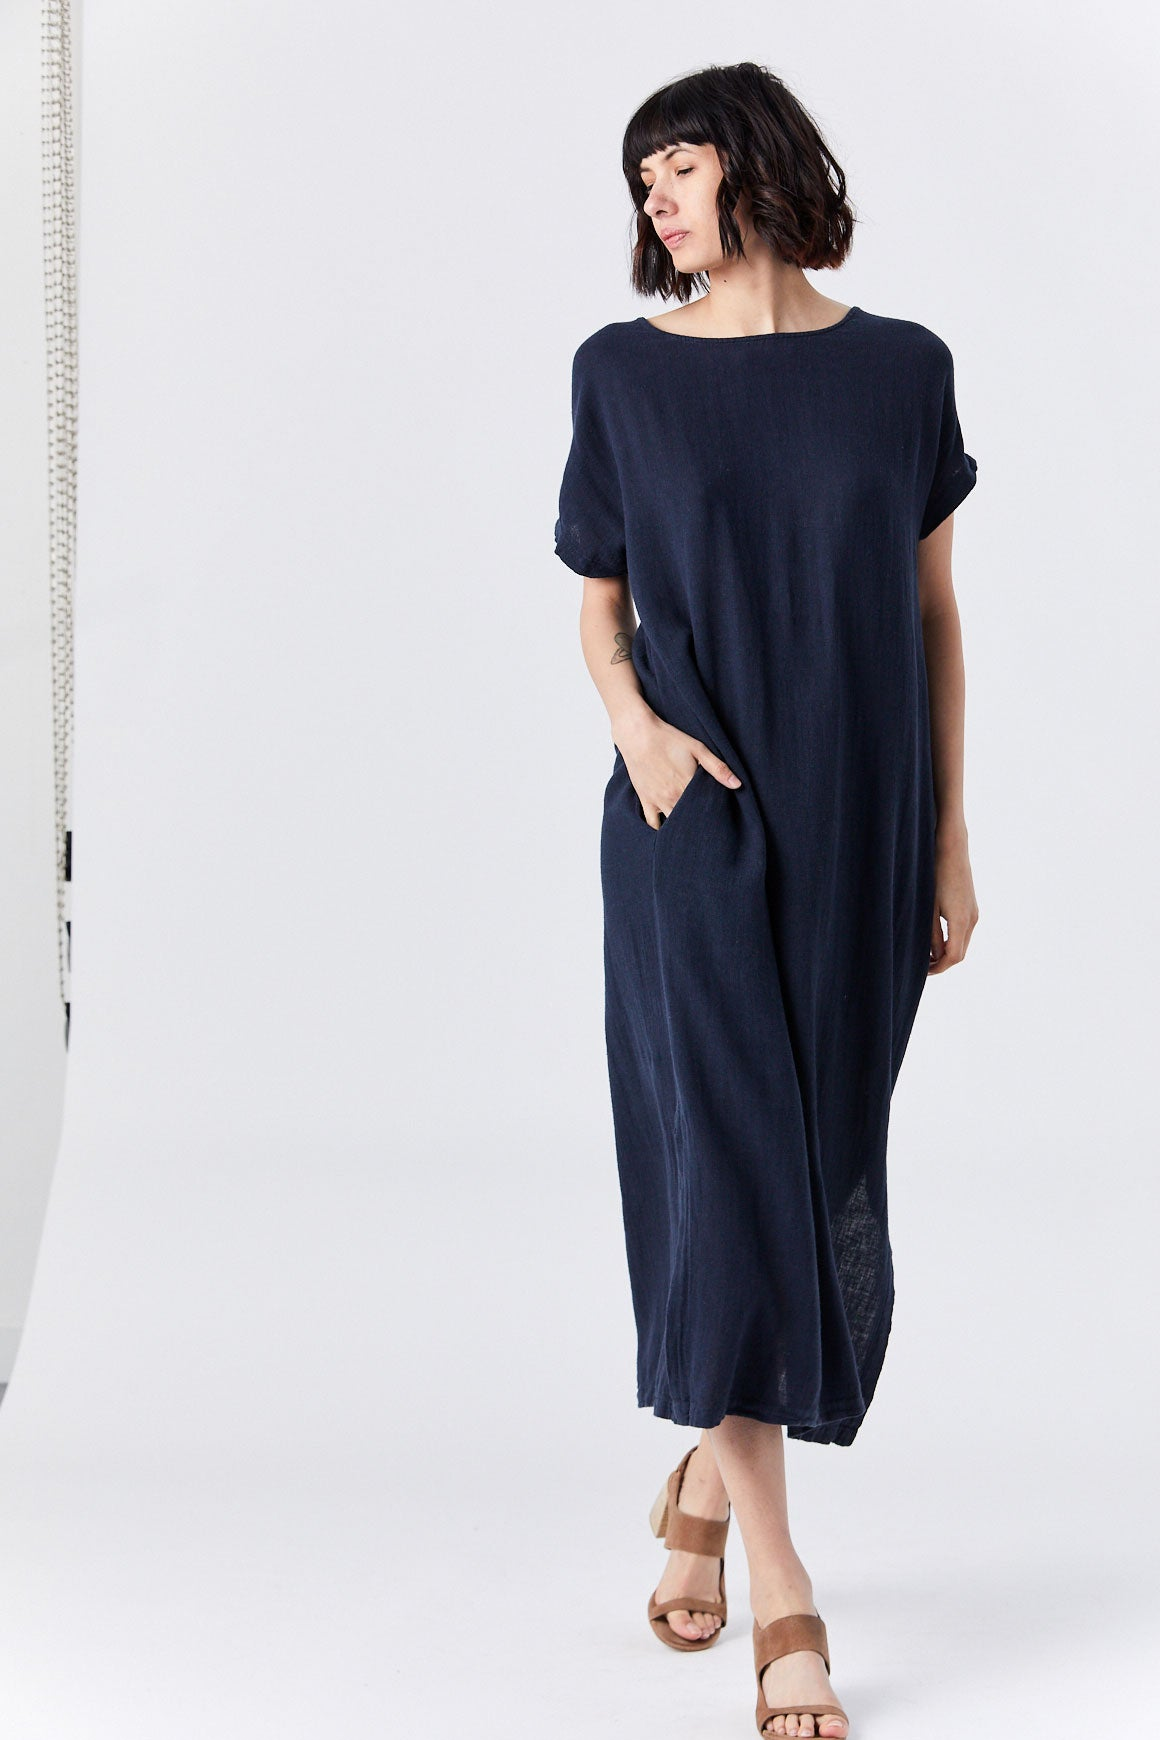 Black Crane - Ester Dress, Dark Navy